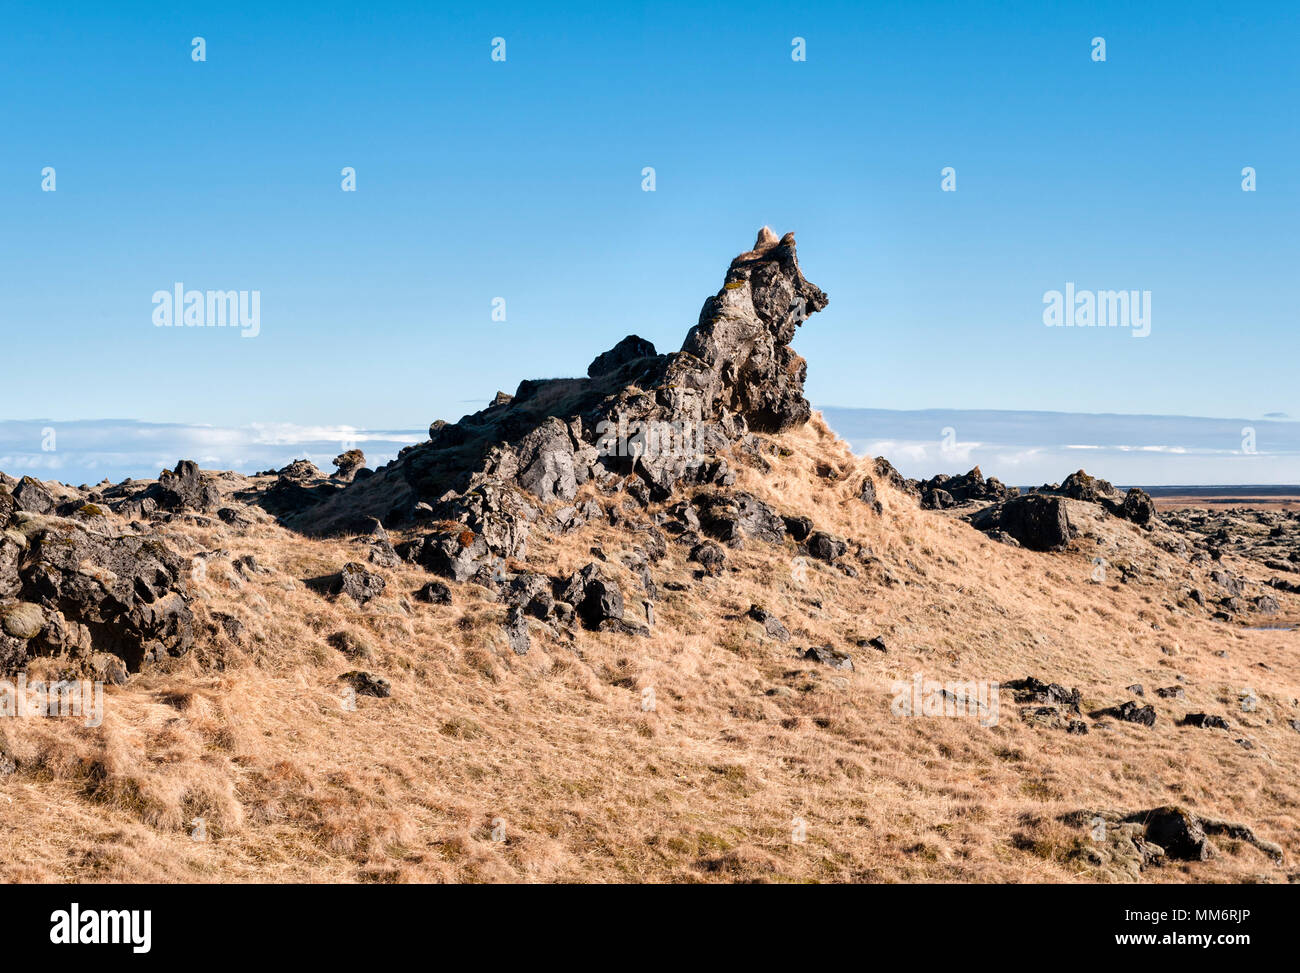 South Iceland - a lava outcrop shaped like a wolf's head, seen from the Ring Road - Stock Image